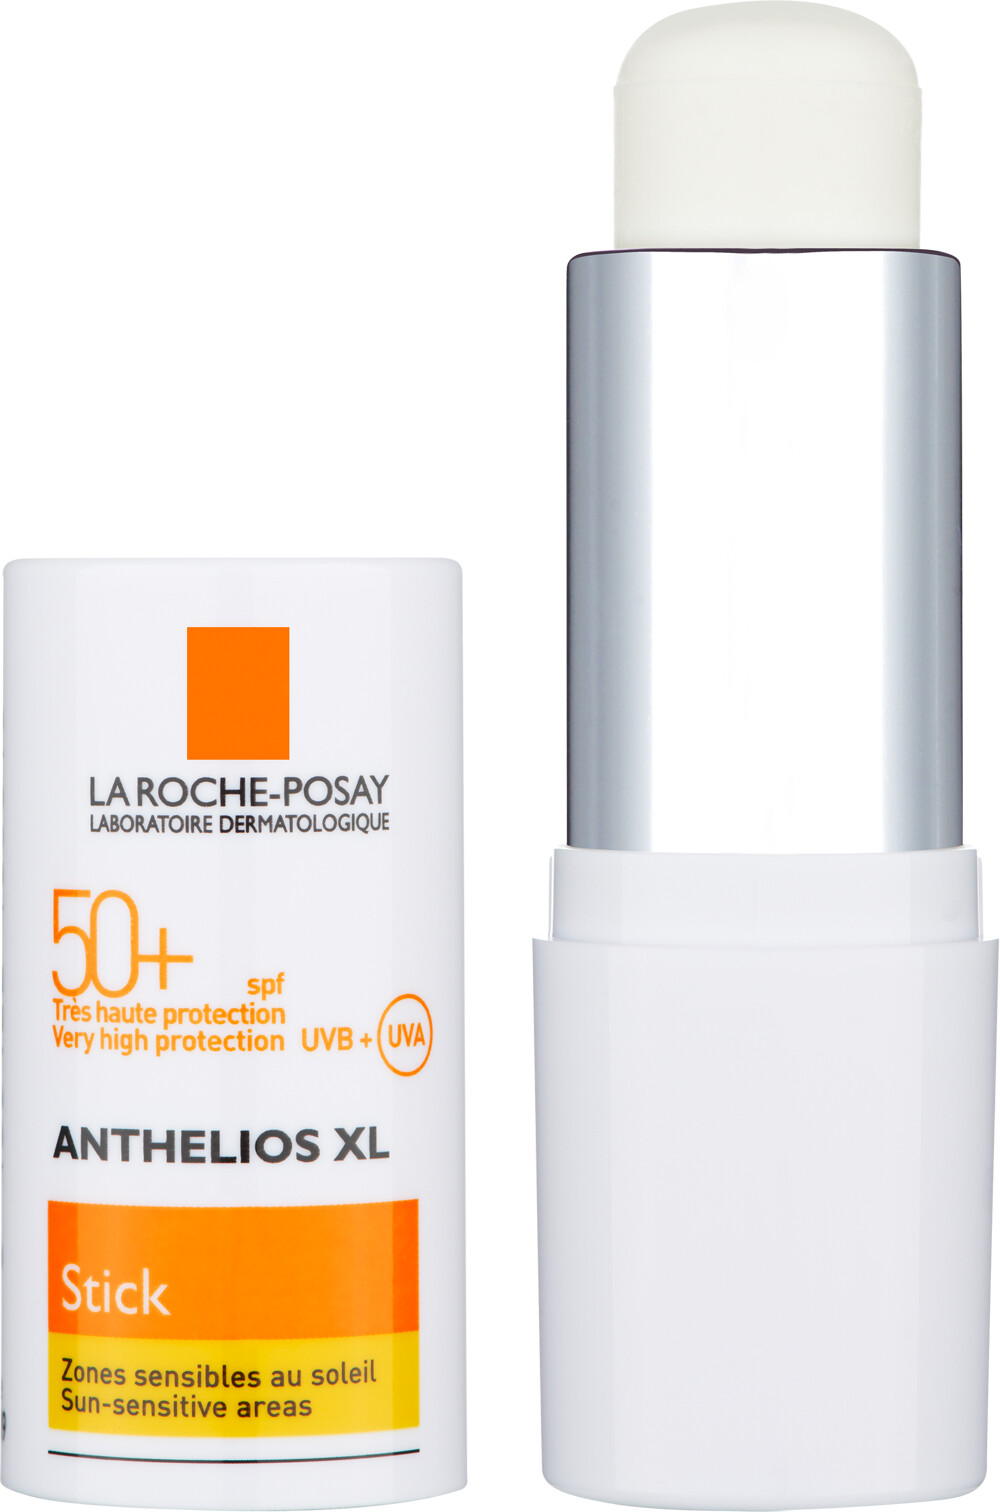 la roche posay anthelios xl stick spf50. Black Bedroom Furniture Sets. Home Design Ideas